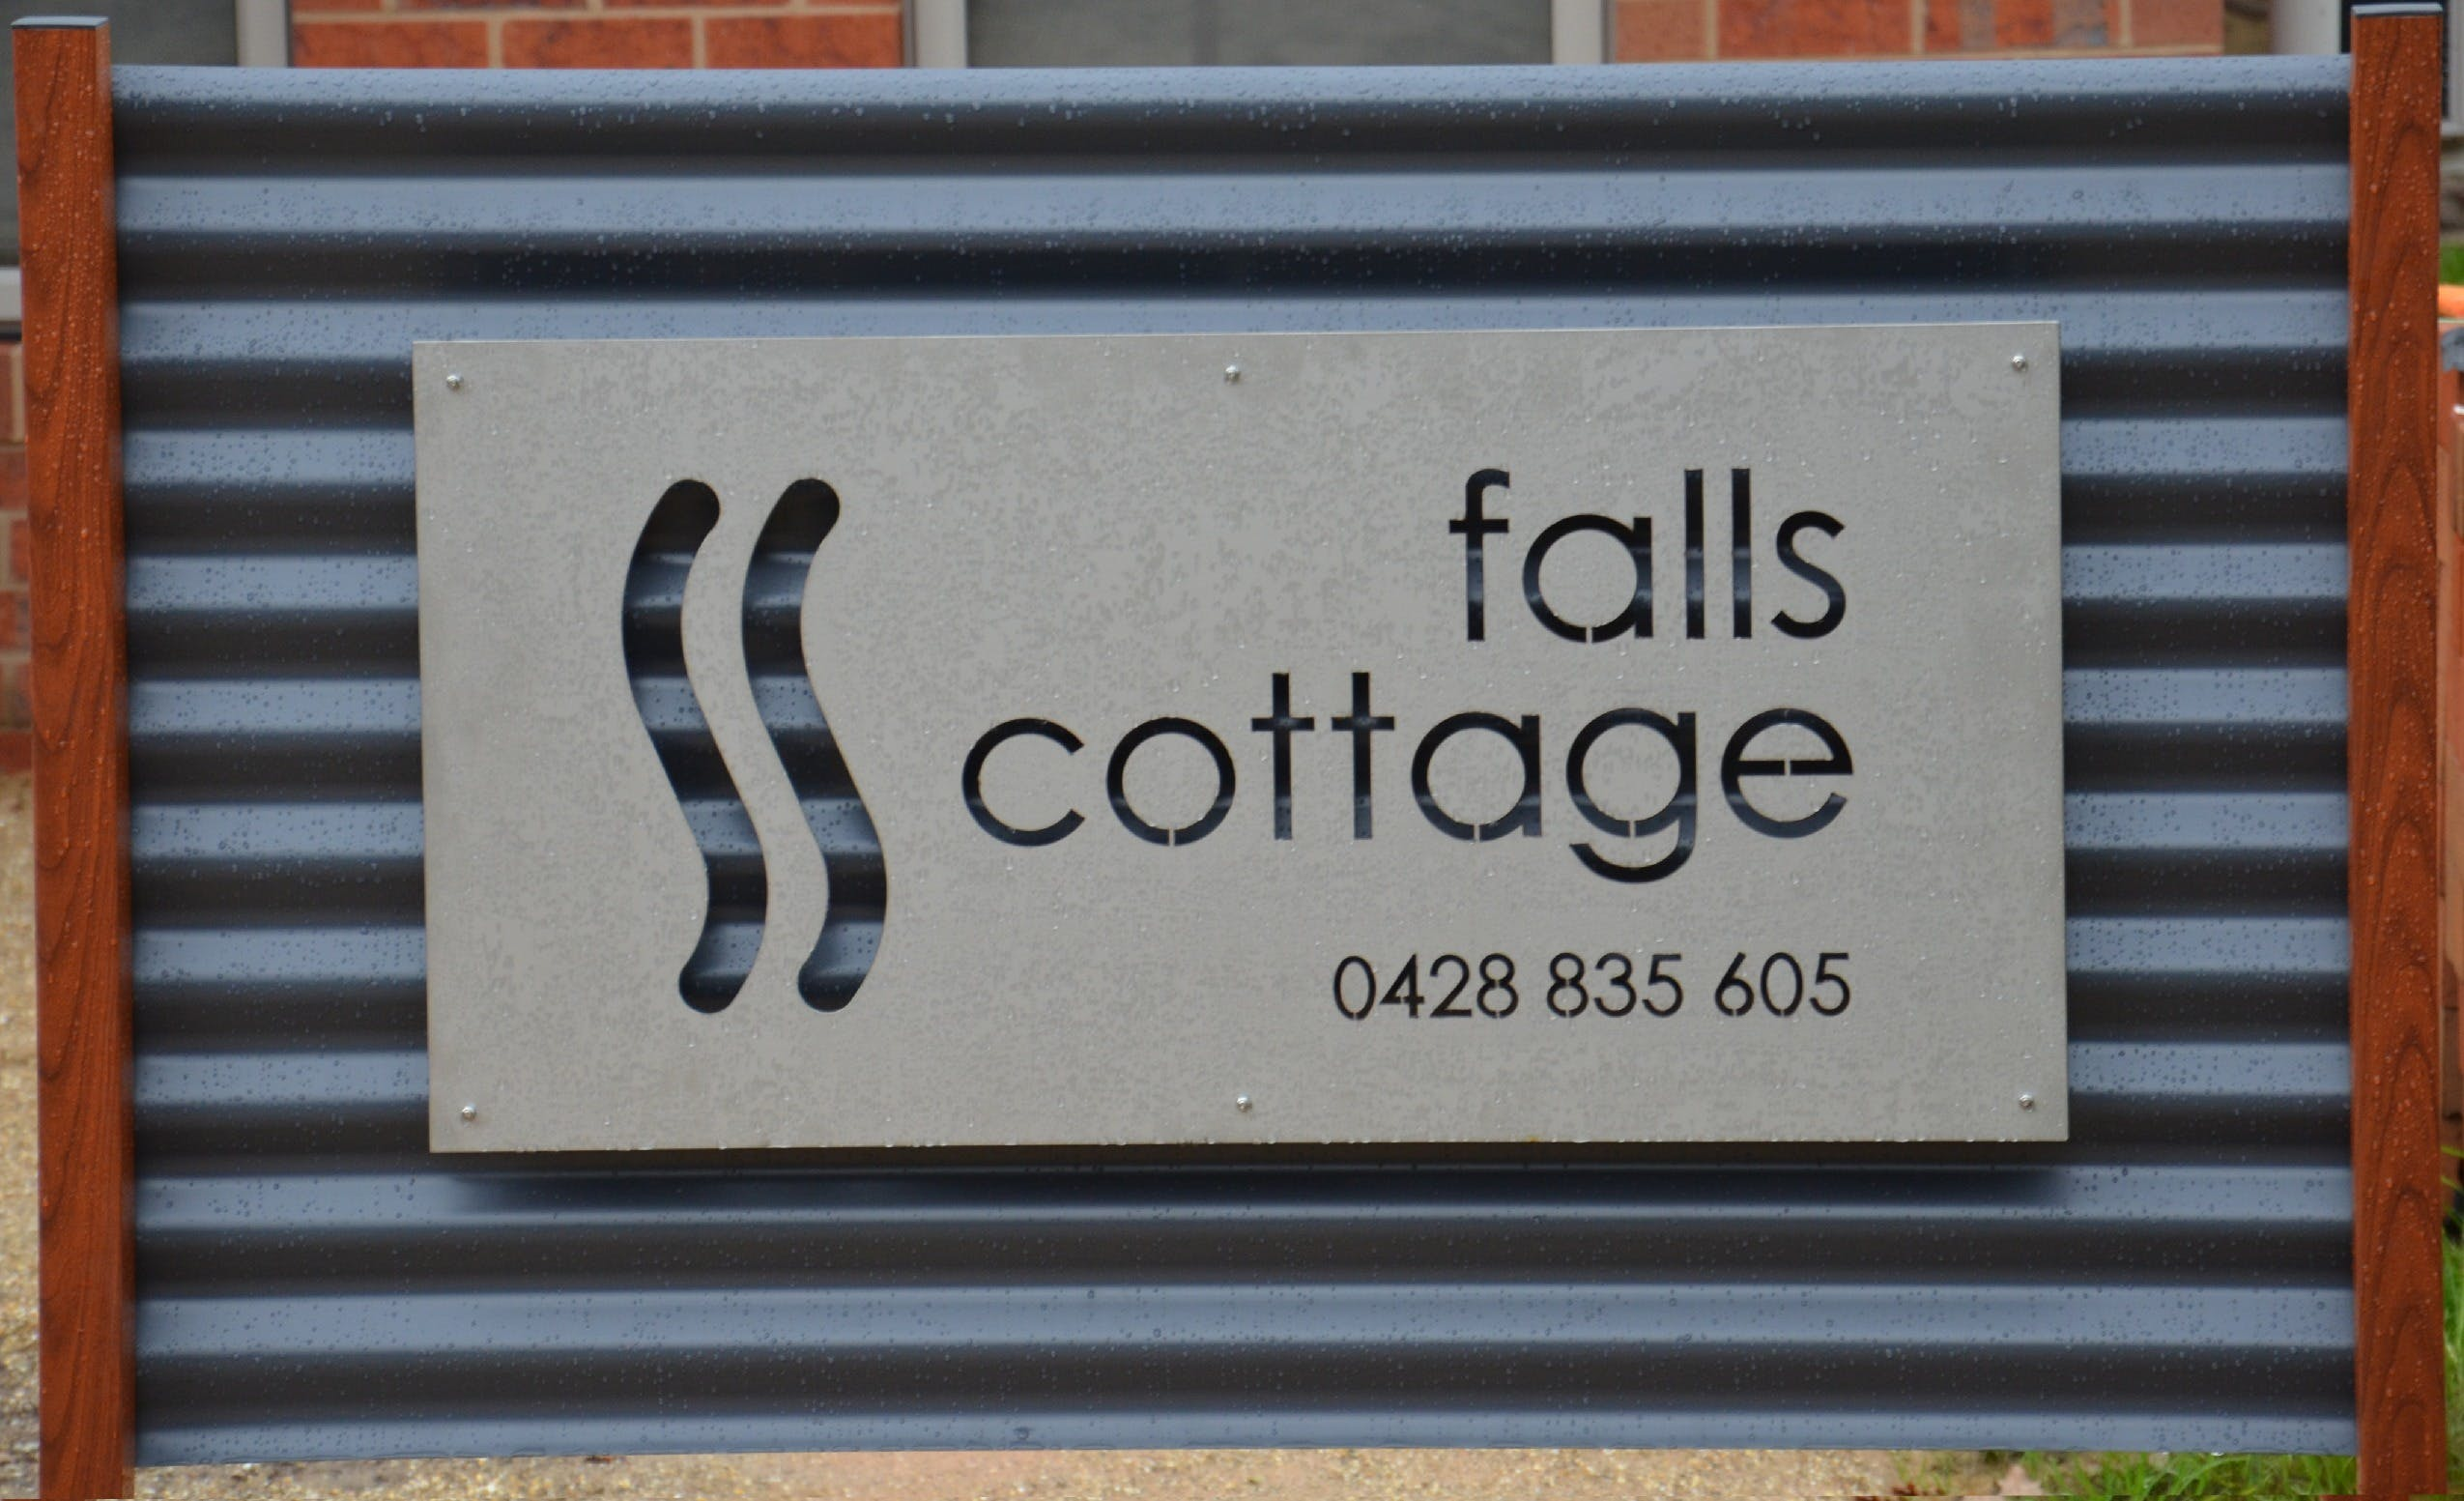 Falls Cottage Whitfield - Accommodation in Surfers Paradise